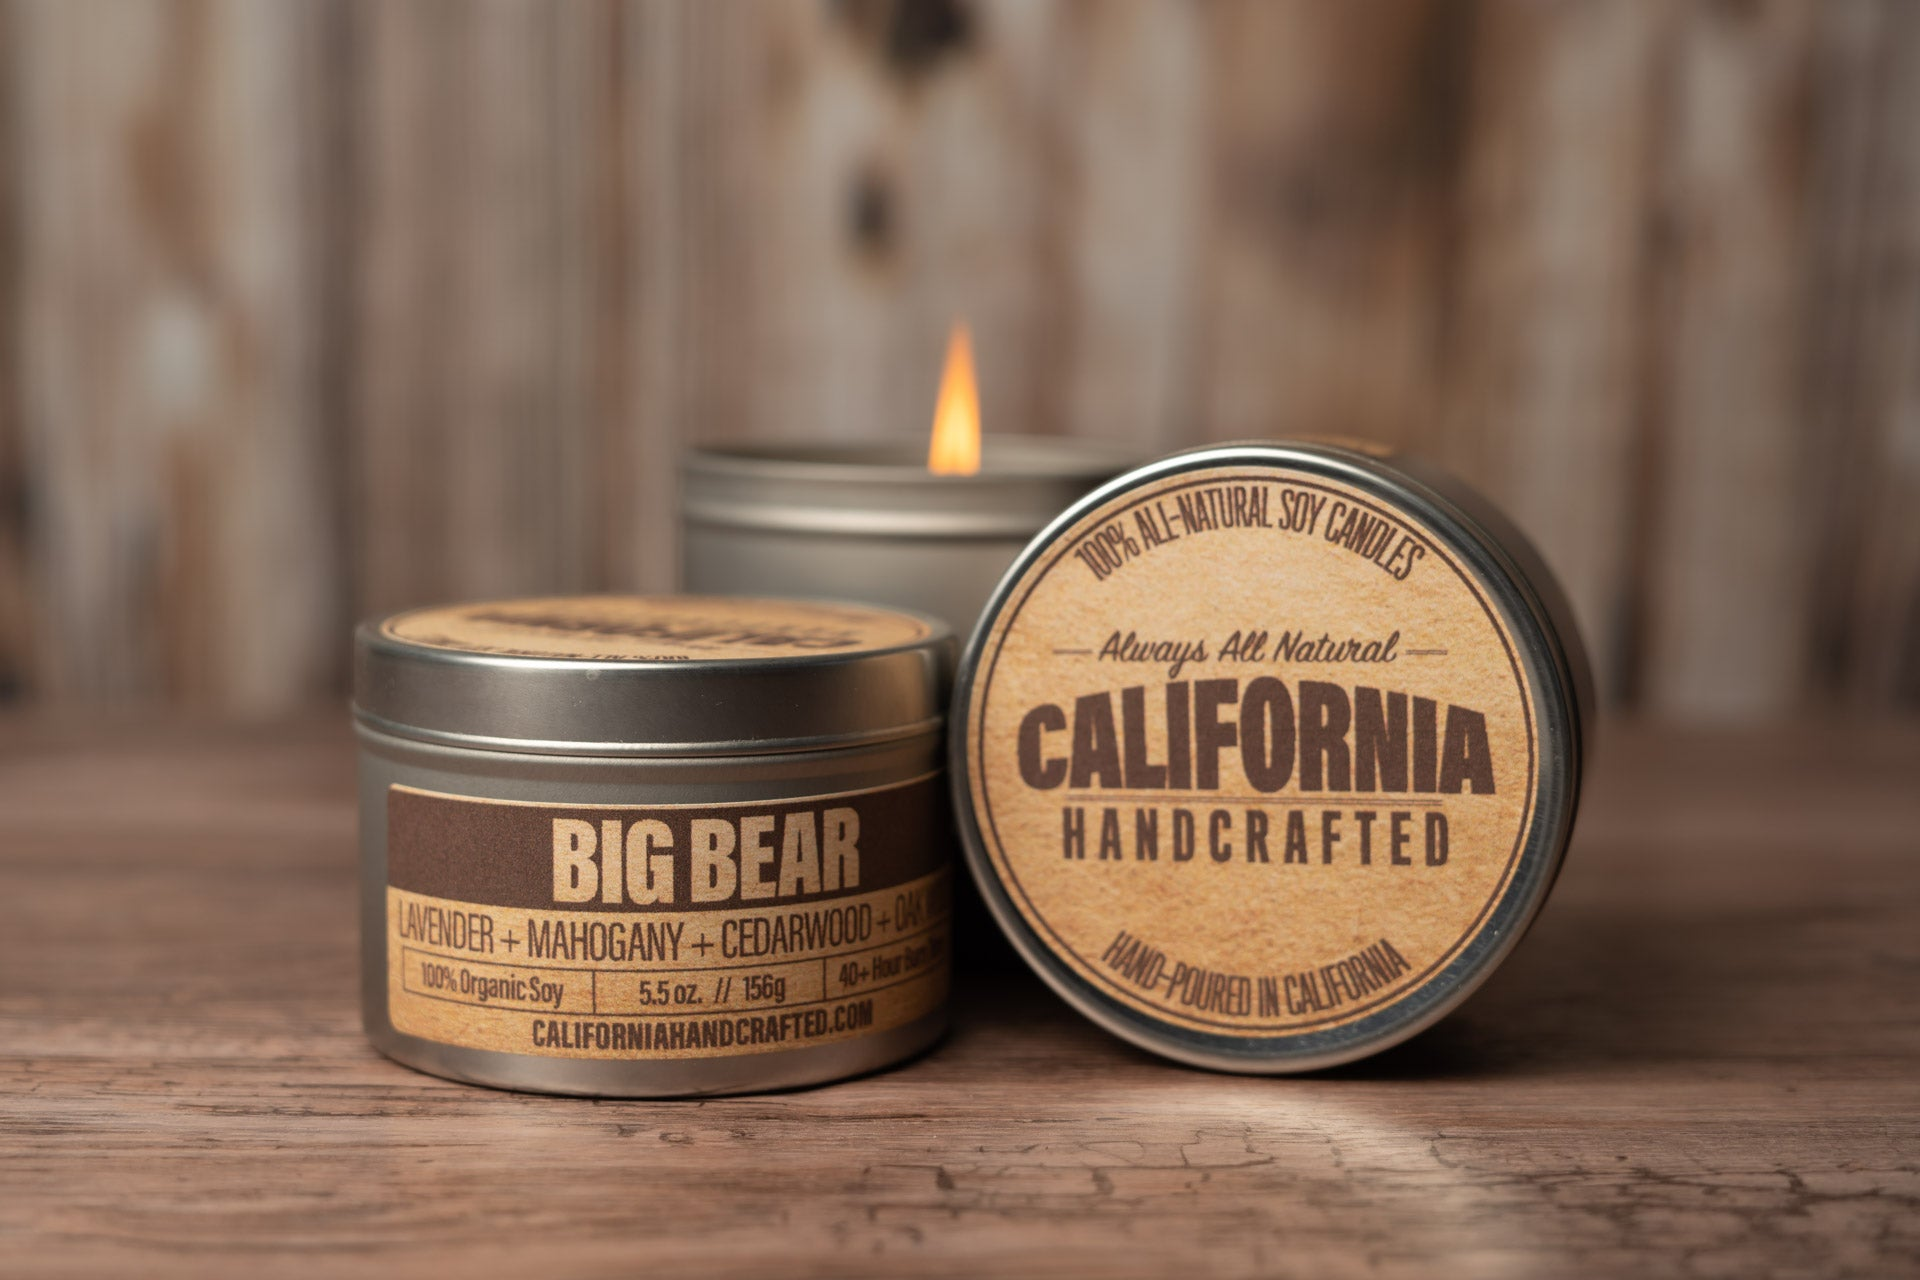 Big Bear - MAHOGANY + LAVENDER + TEAK OIL + CEDAR - Soy Candle in Travel Tin